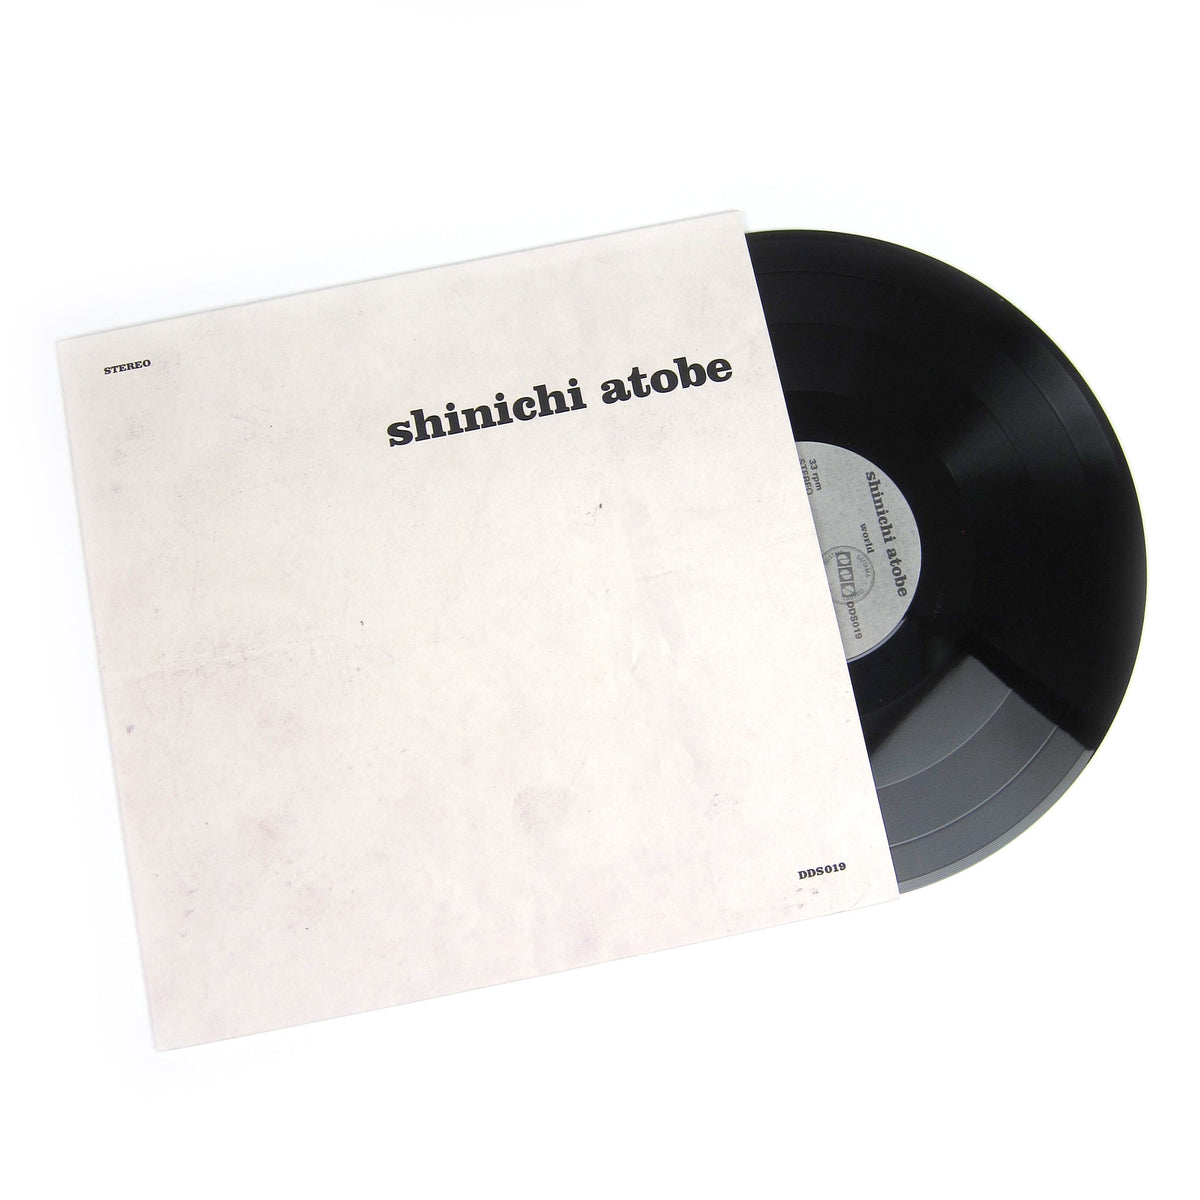 Shinichi Atobe: World Vinyl LP